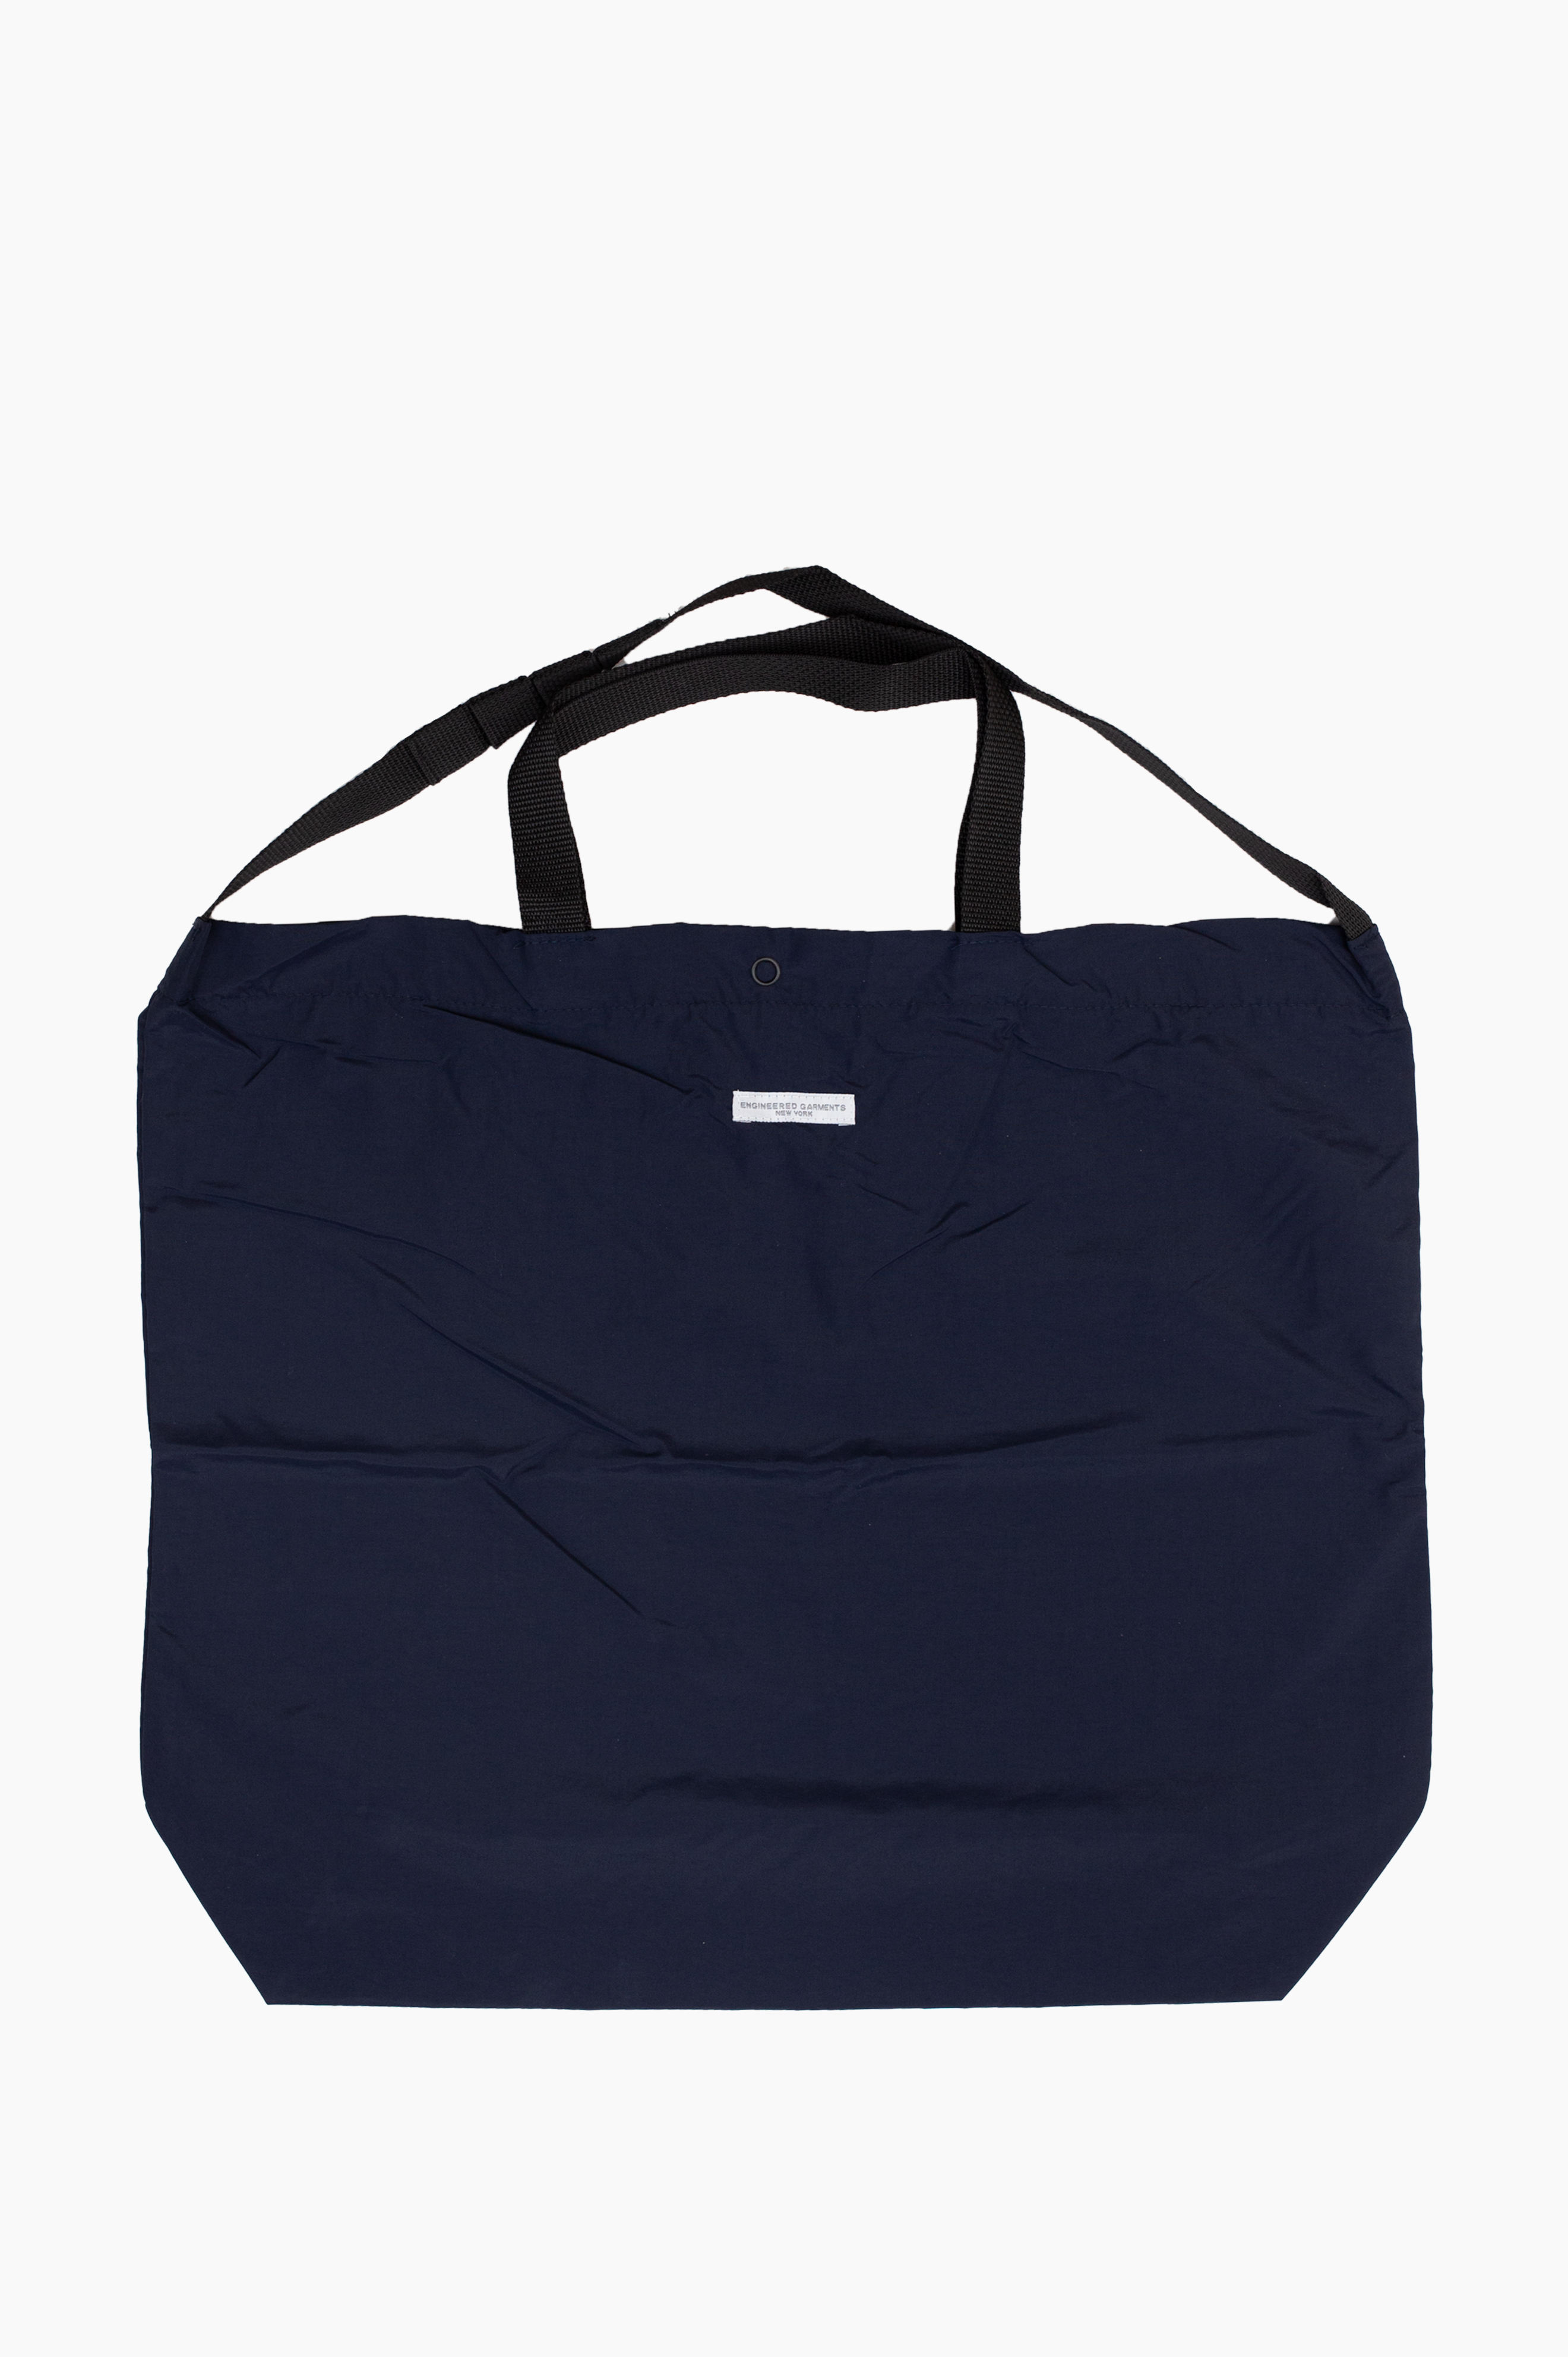 Carry All Tote Bag Navy